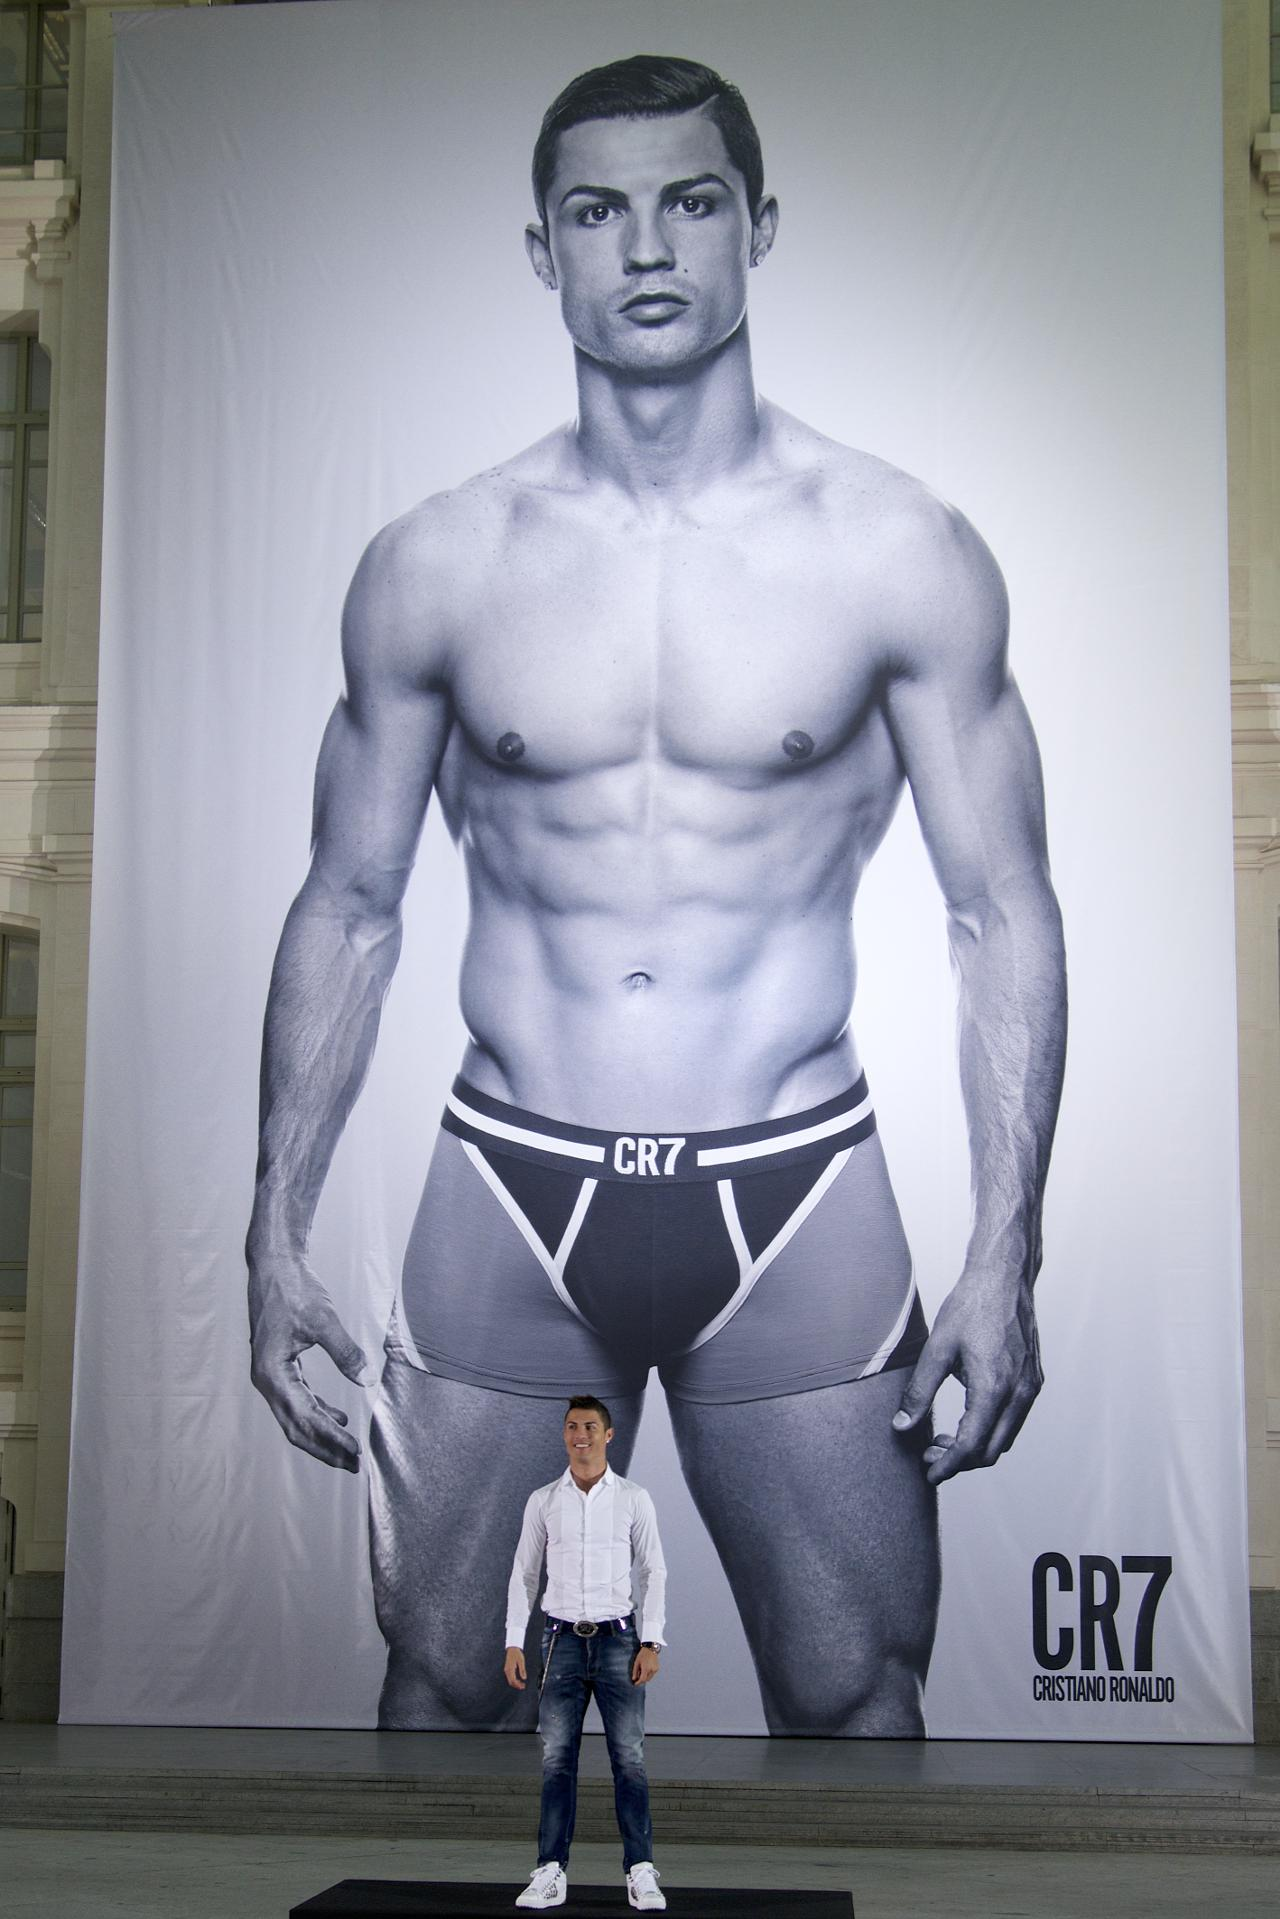 Should Real Madrid consider selling Cristiano Ronaldo 2016 images